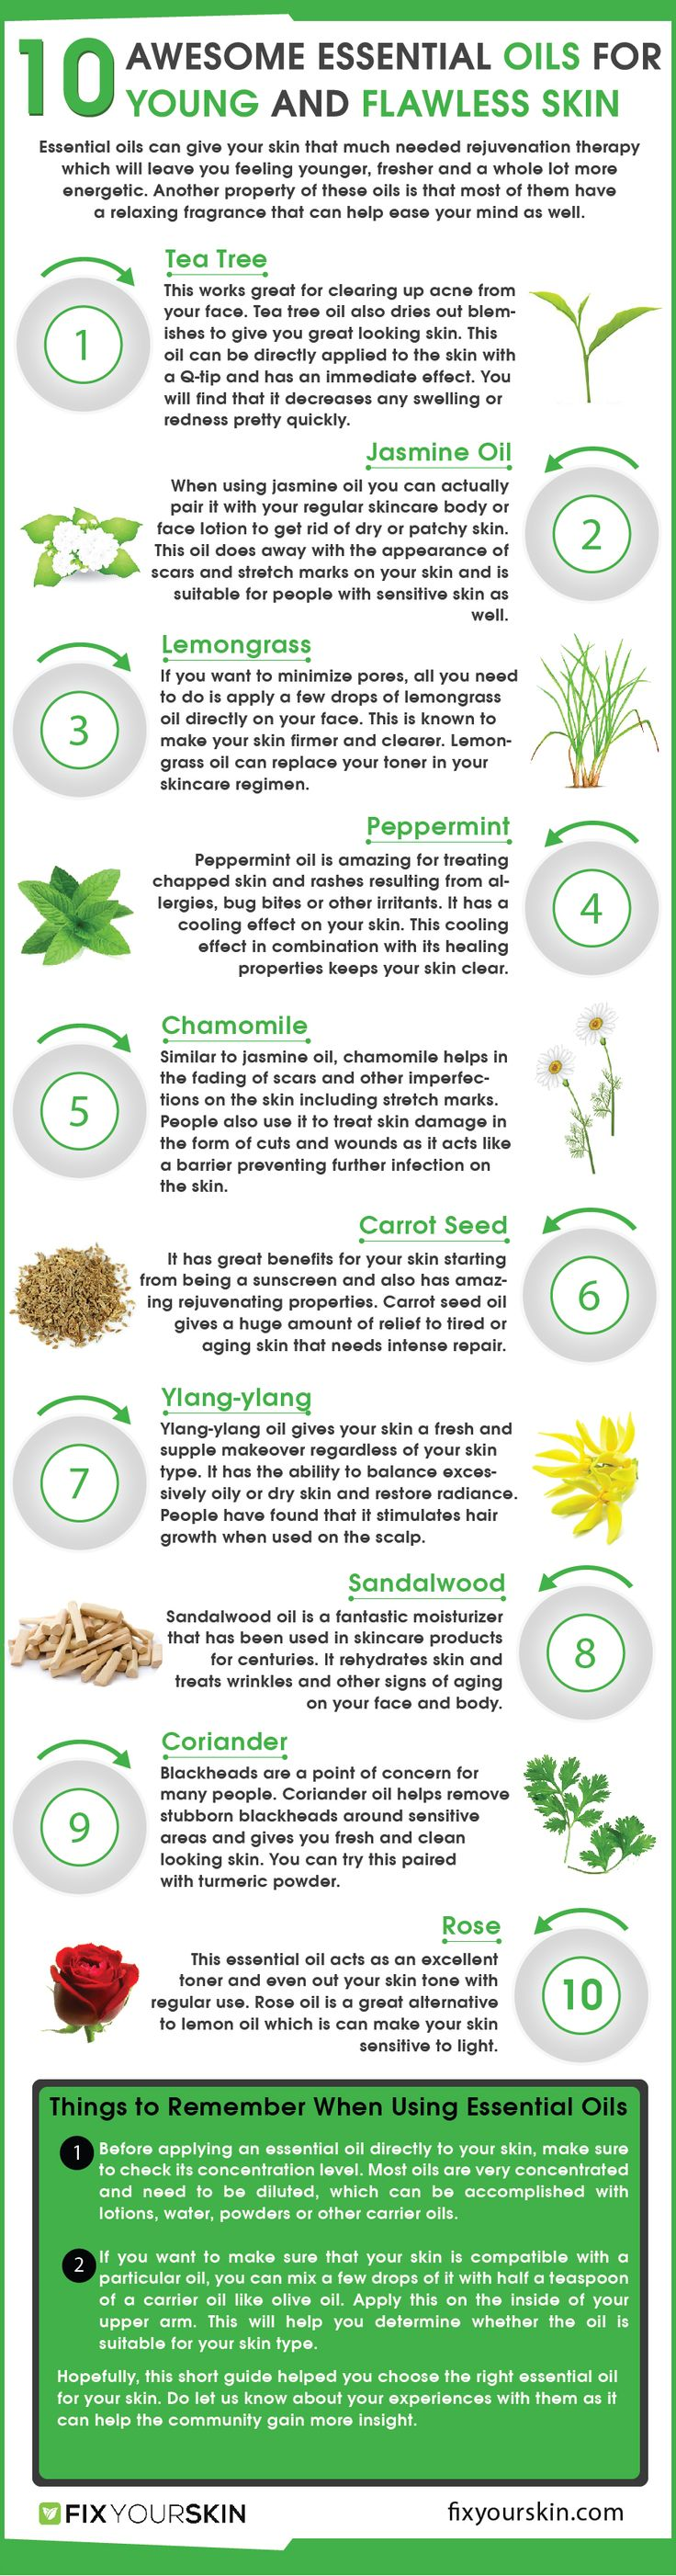 Benefits Of Essential Oils For Skin And Hair Care - MakeUp Fun http://www.makeupfun.it/2017/01/benefits-essential-oils-for-skin-hair-care.html